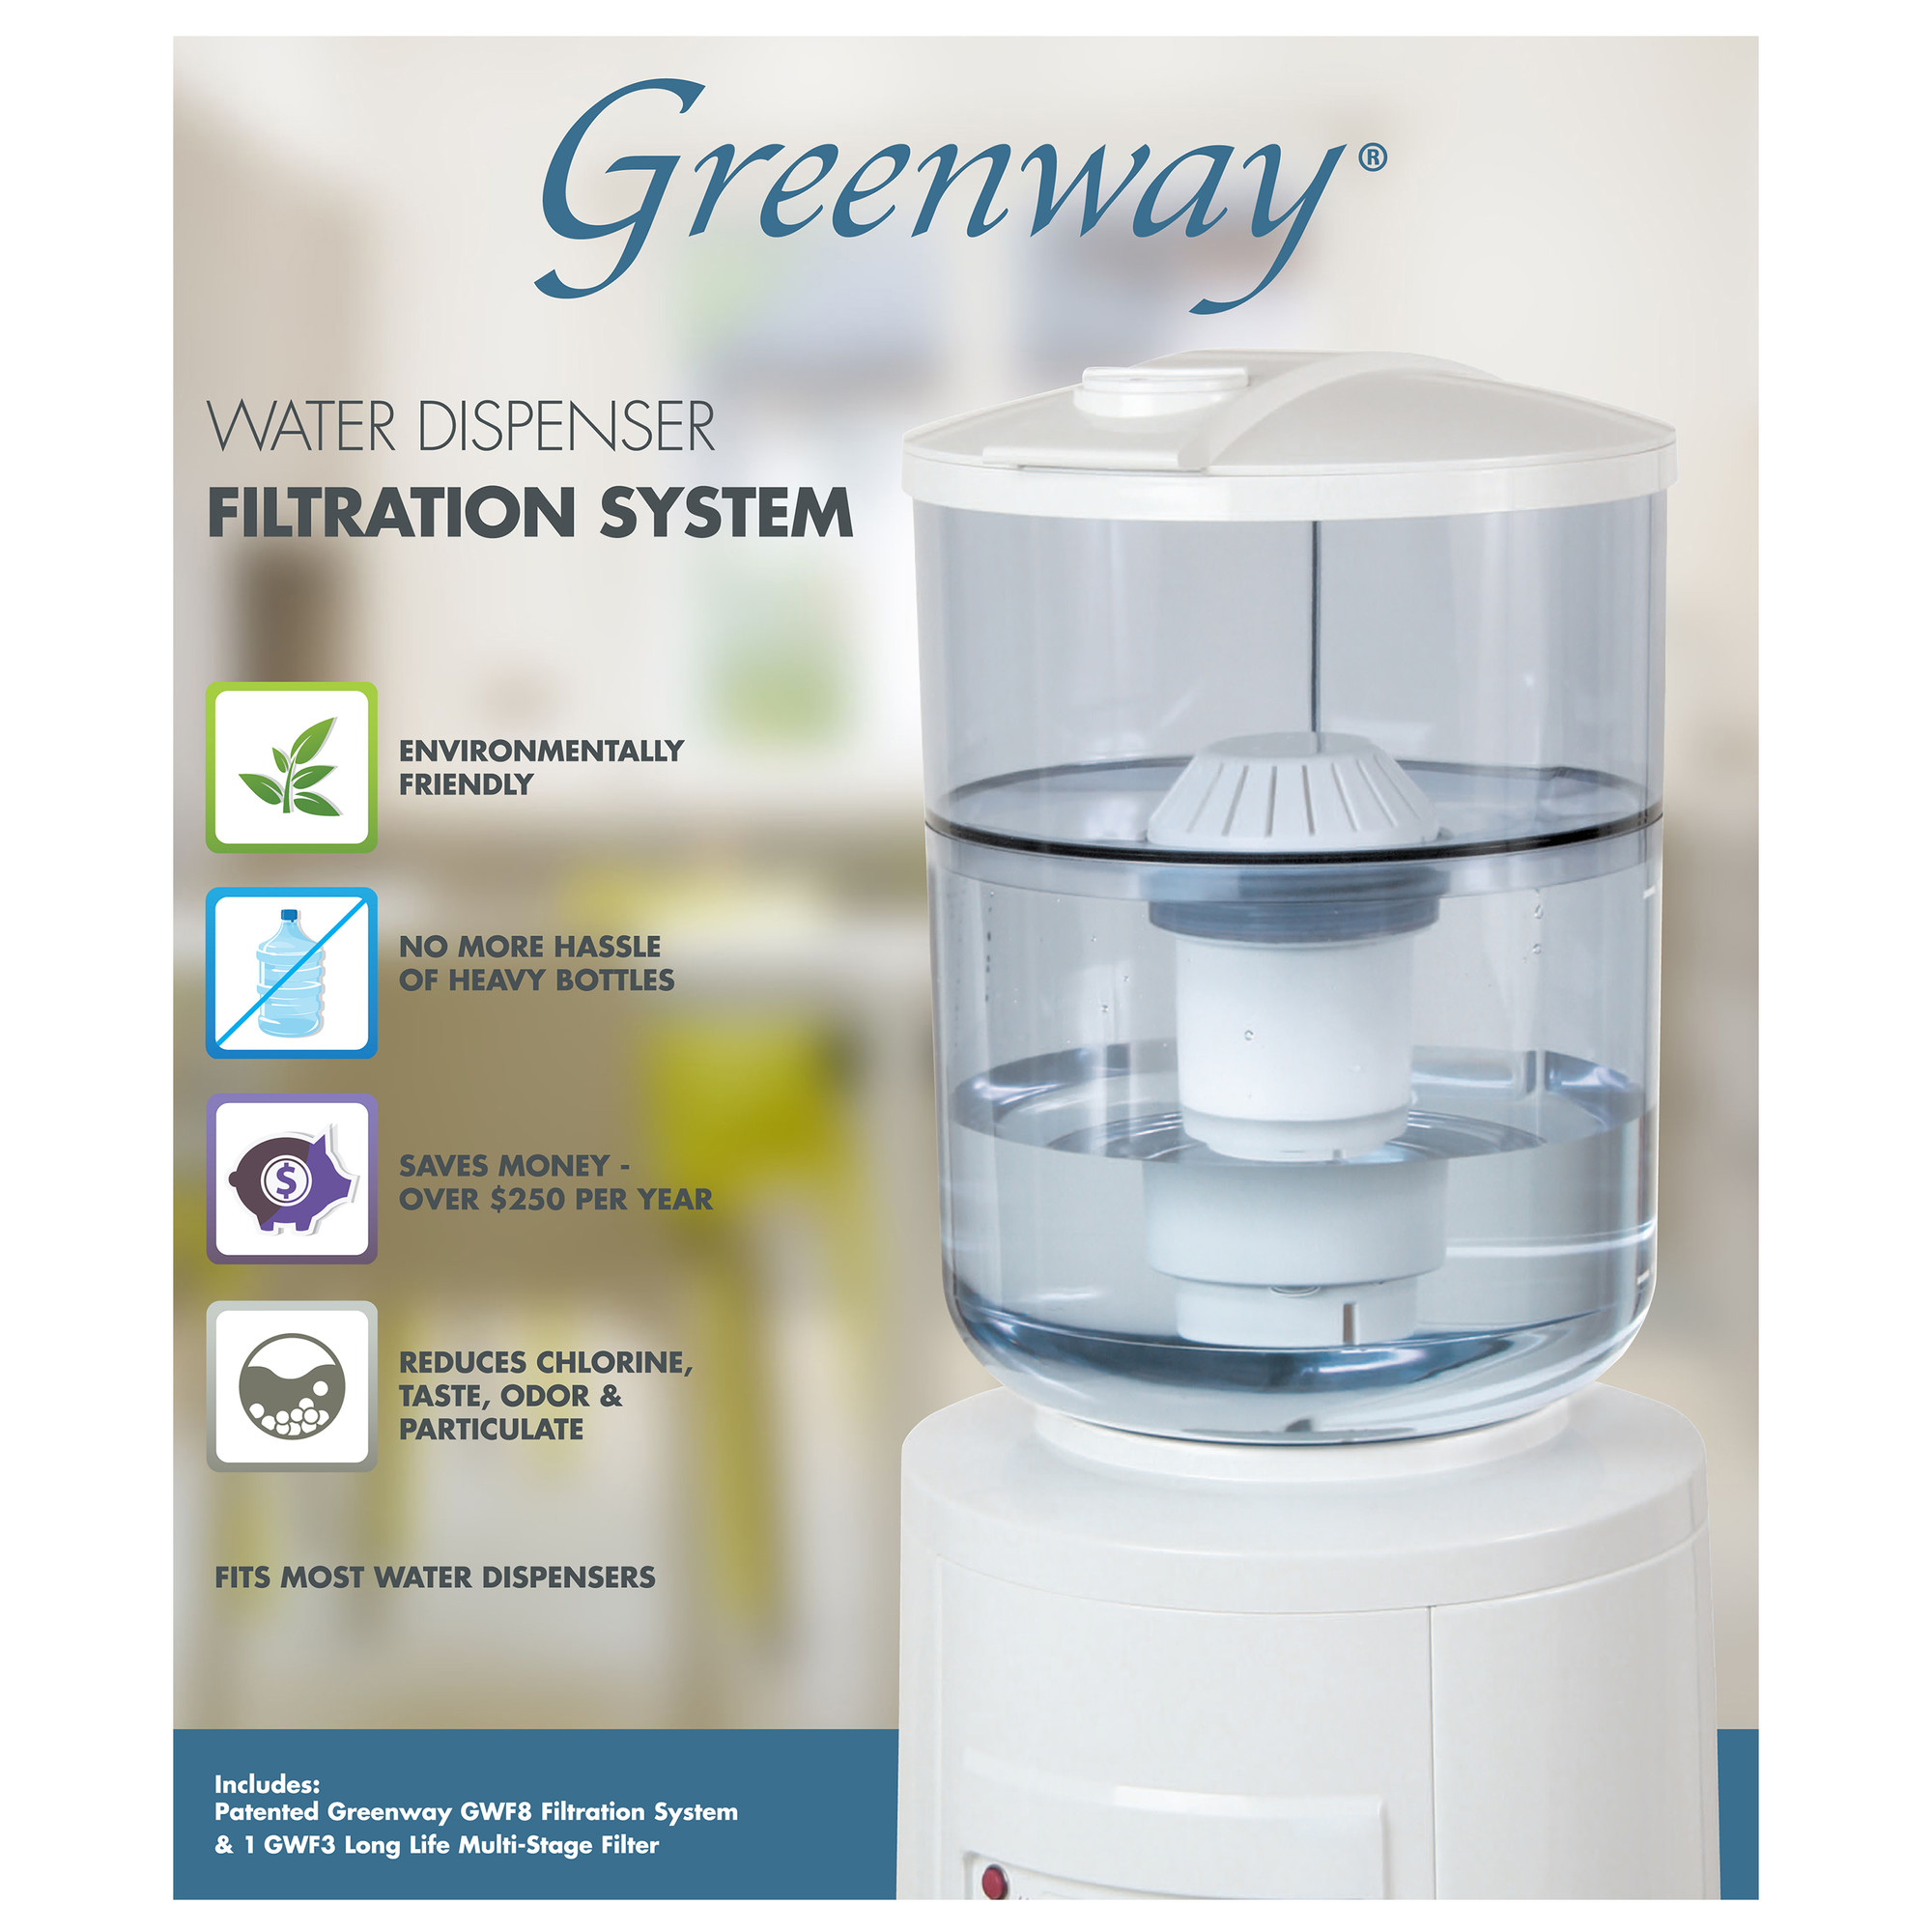 Greenway Water Cooler Filtration System - Walmart.com